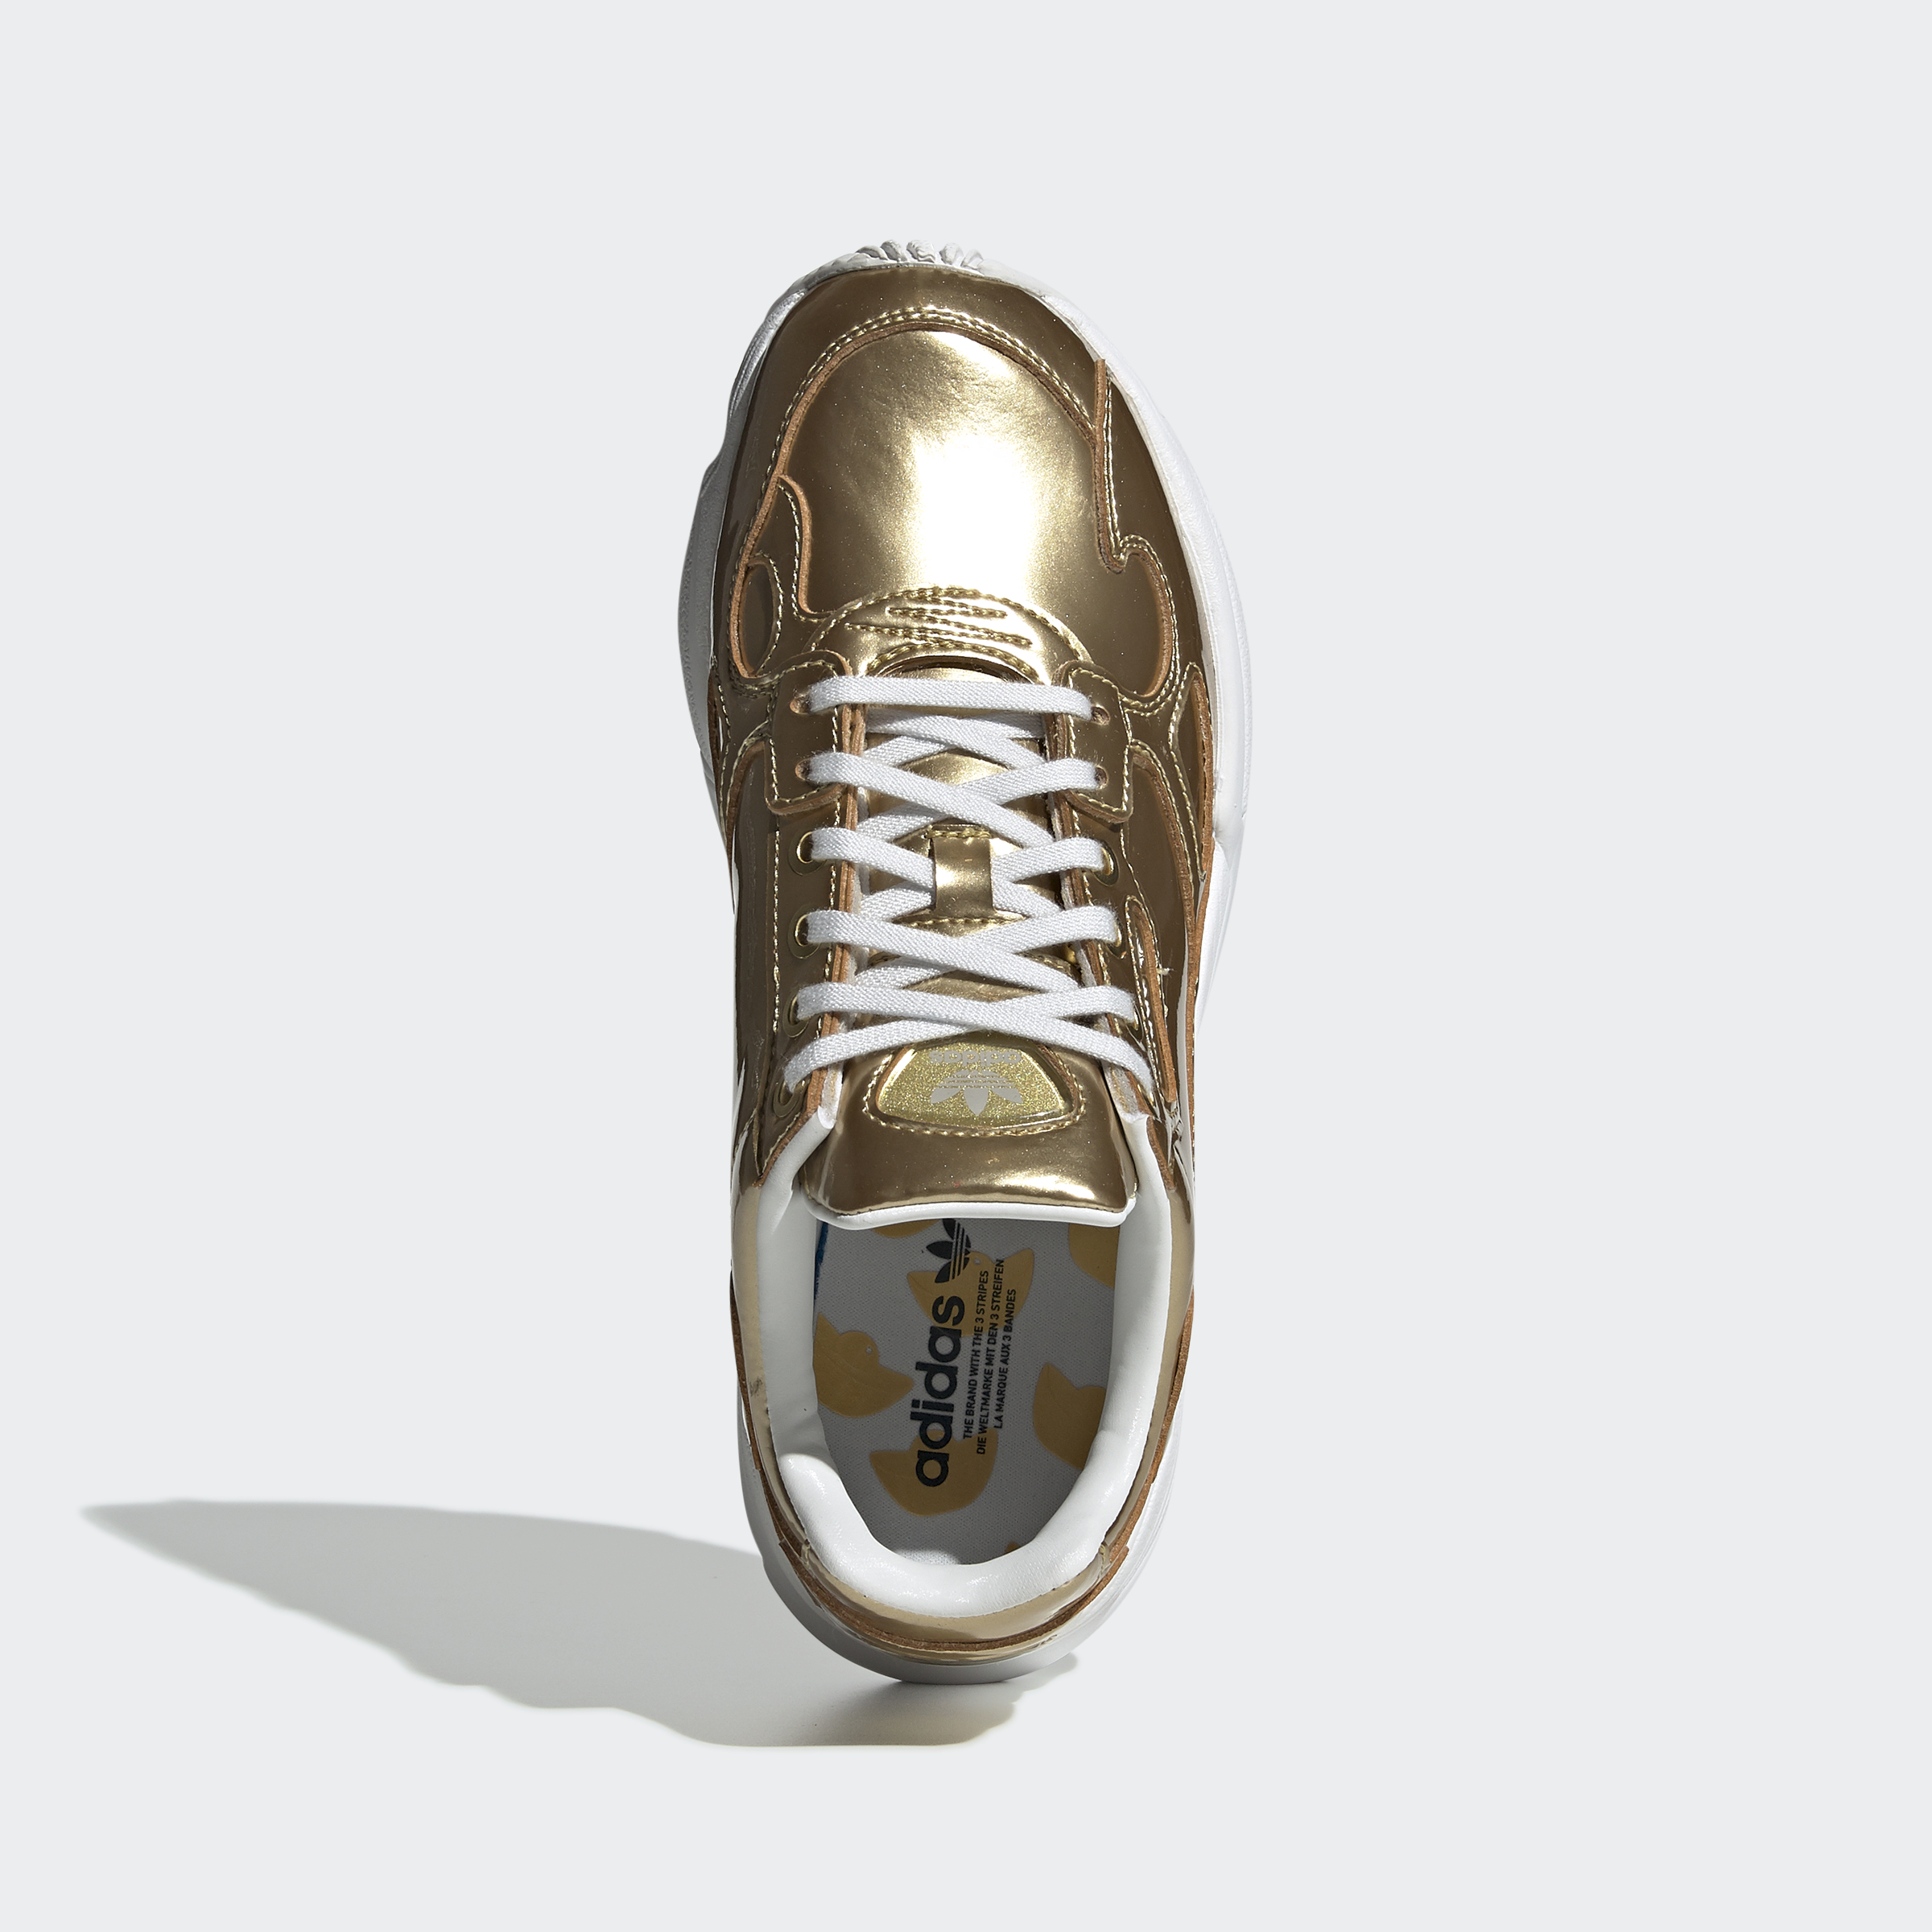 adidas-Falcon-Shoes-Women-039-s-Athletic-amp-Sneakers thumbnail 16